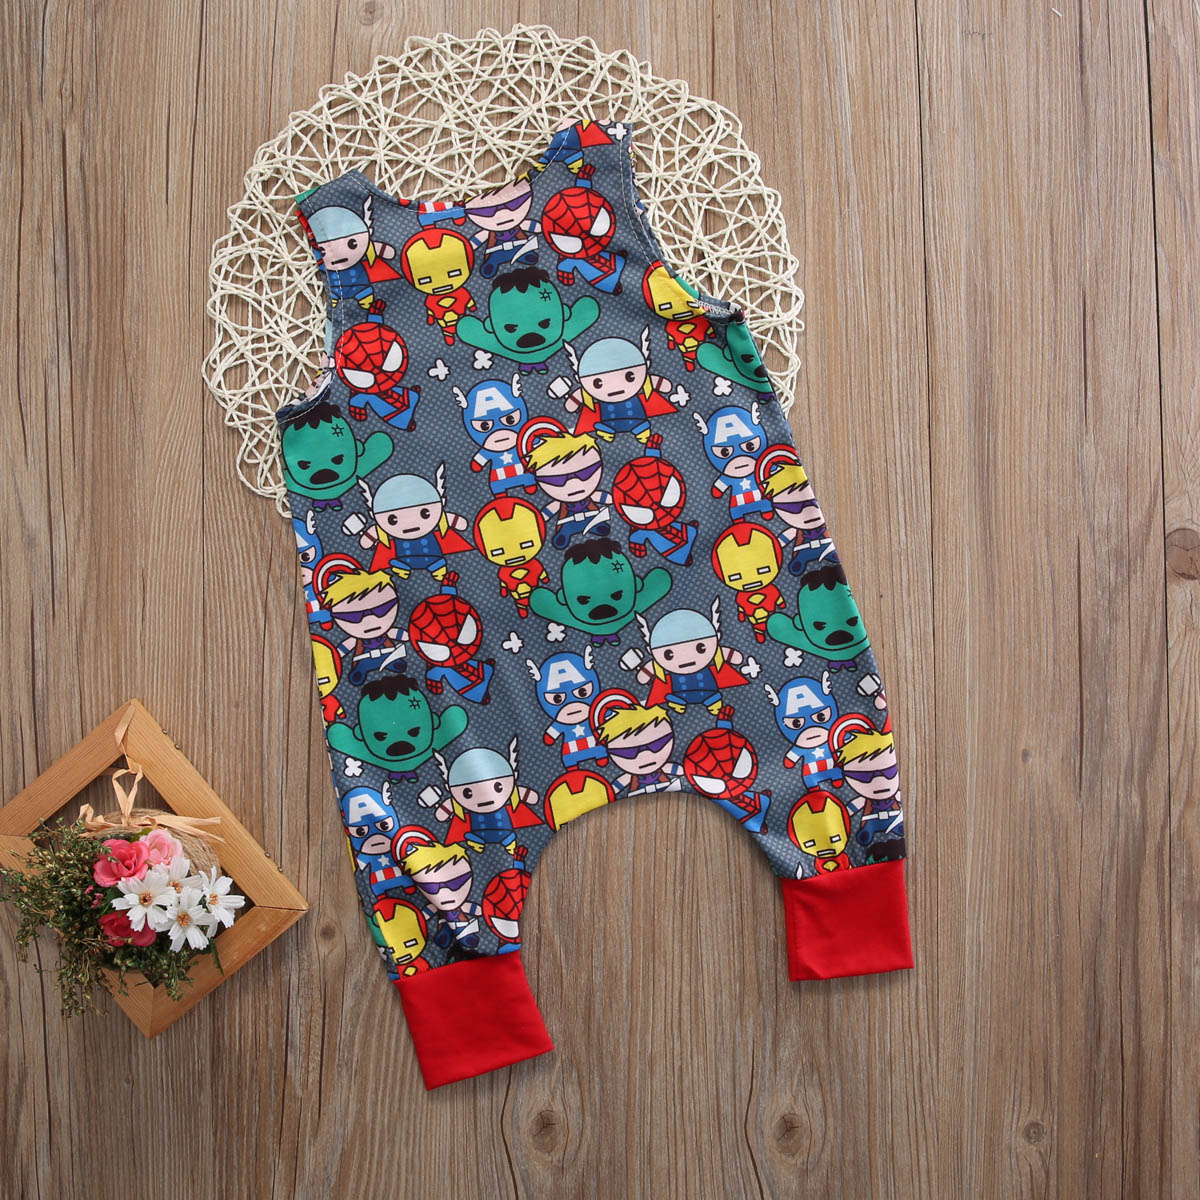 d7c92e8e6 Carton Marvel Superhero Group Summer Newborn Baby Boy Romper Hero Long  Jumpsuit Pattern Kids Clothes of Boy-in Rompers from Mother & Kids on  Aliexpress.com ...